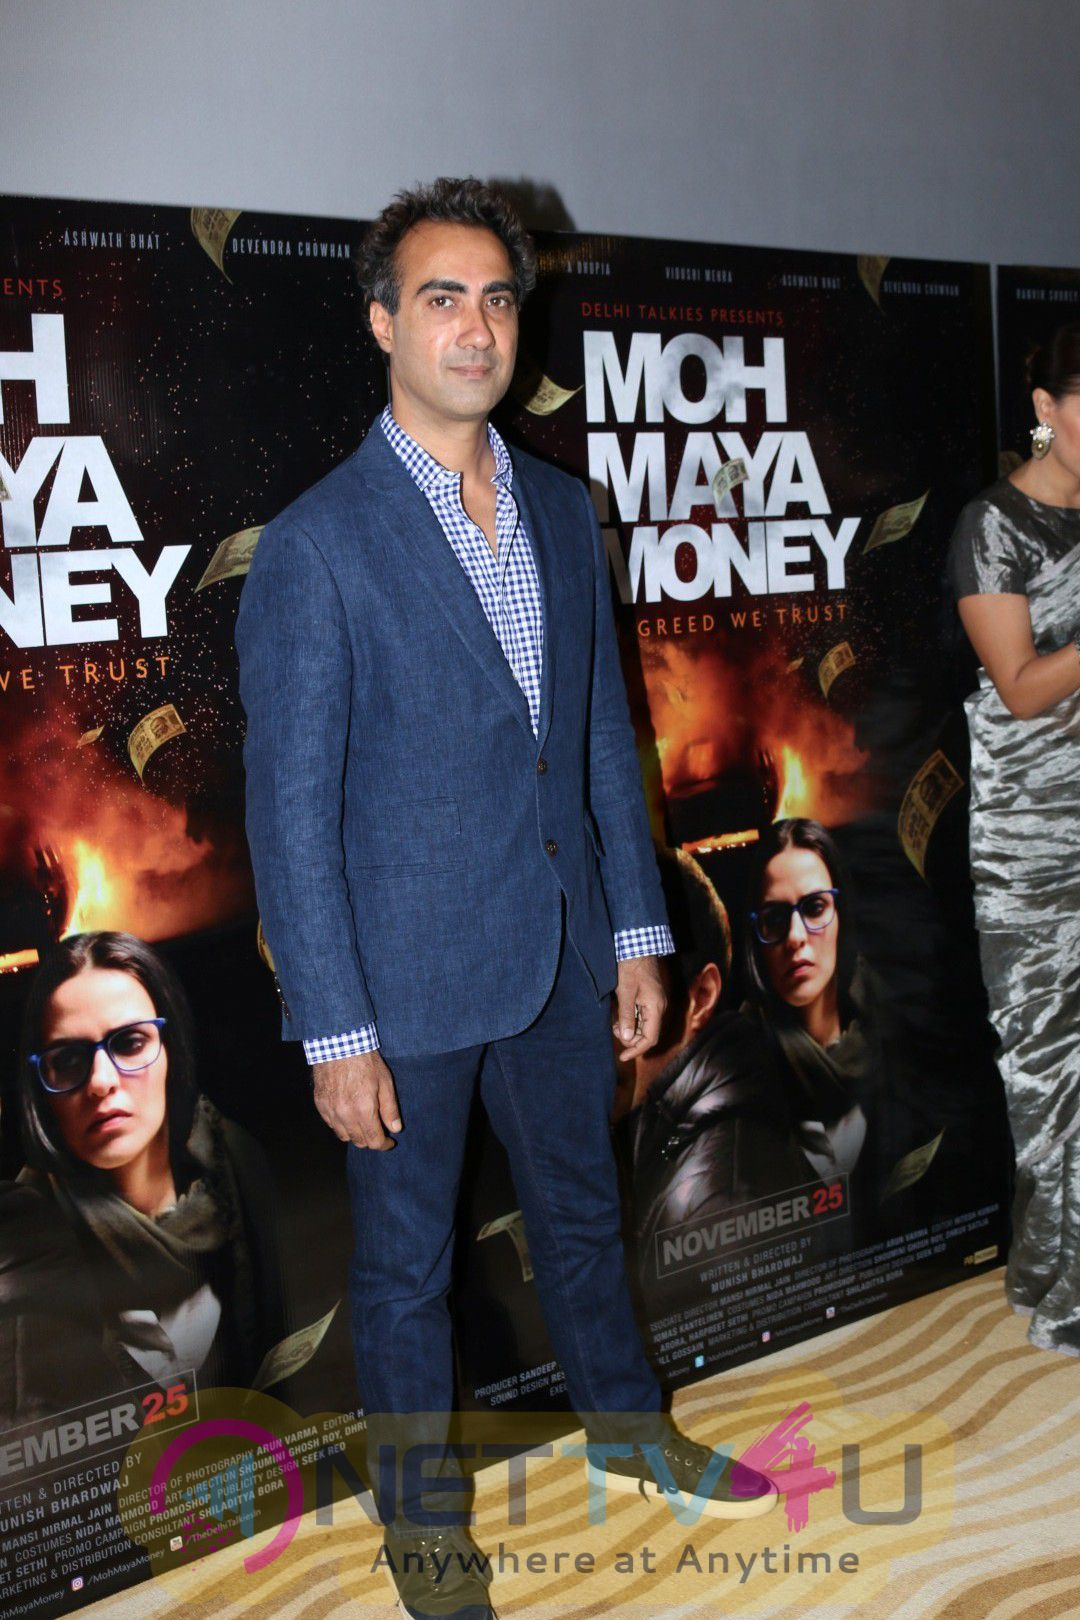 Moh Maya Money Movie Trailor Launch At Neha Dhupia Ranvir Shorey